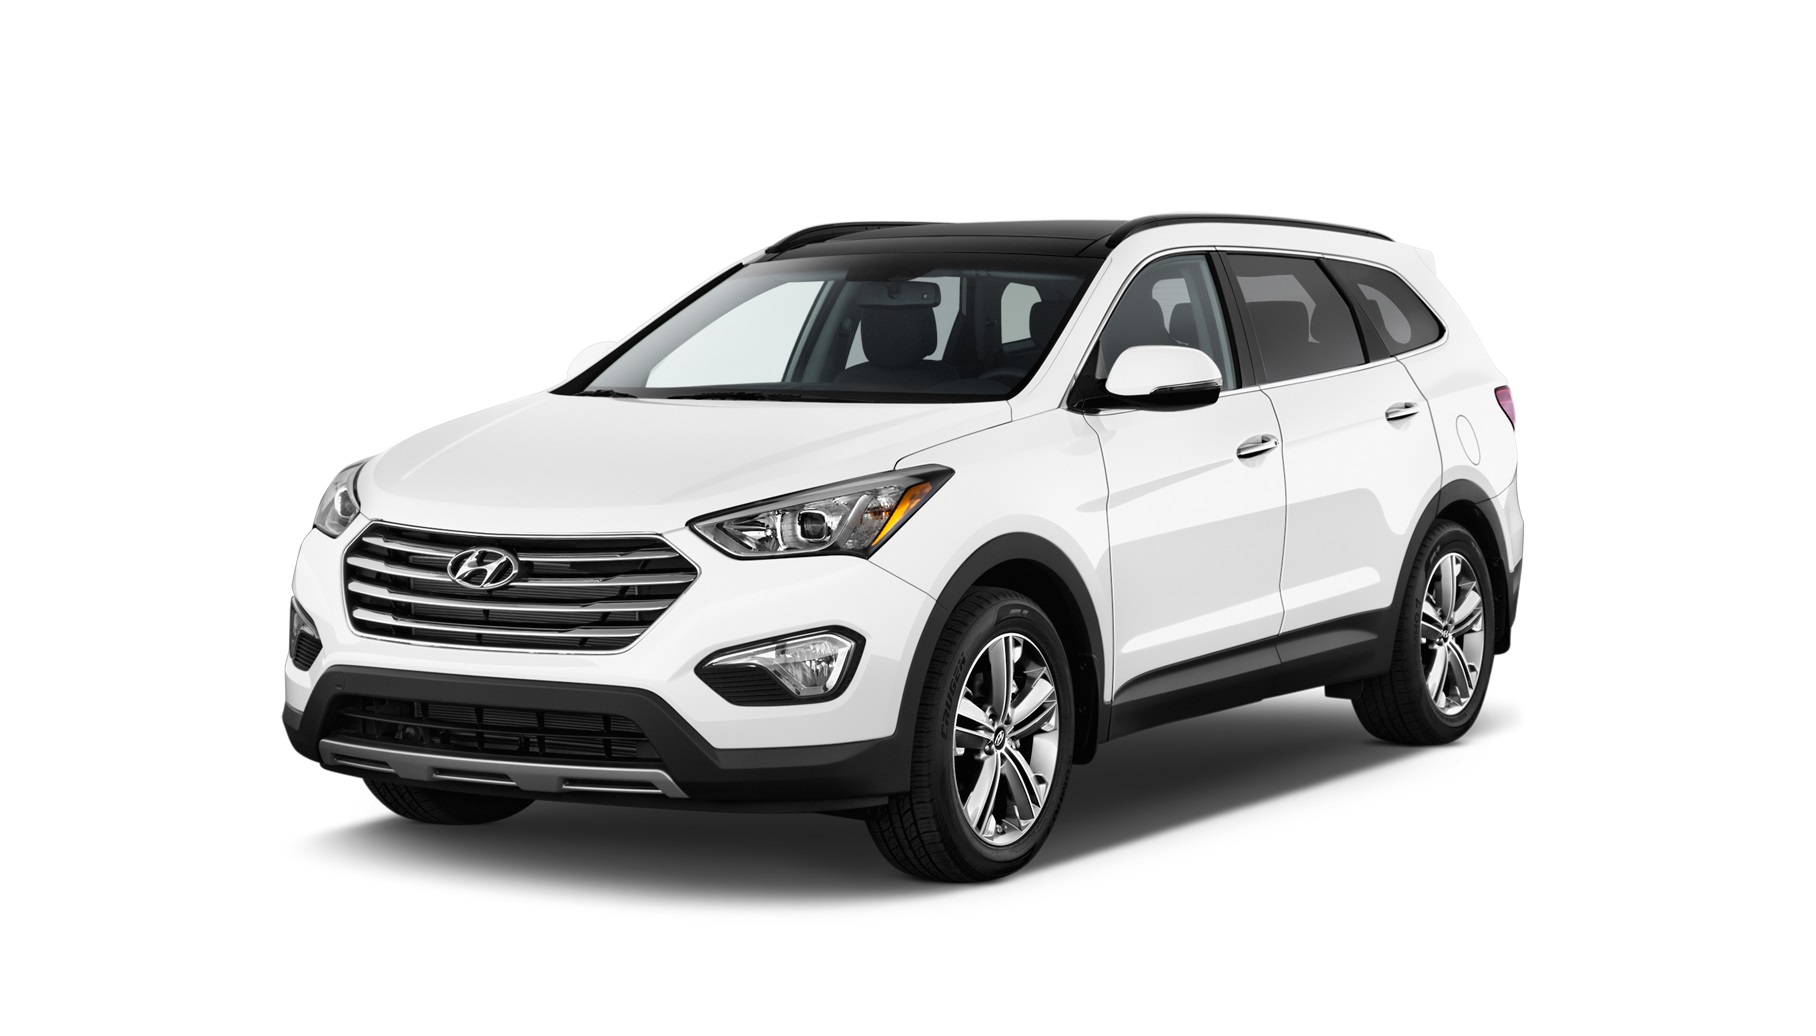 Kia Certified Pre-Owned >> Hyundai Grand Santa Fe 2018 3.3L AWD Top in UAE: New Car ...